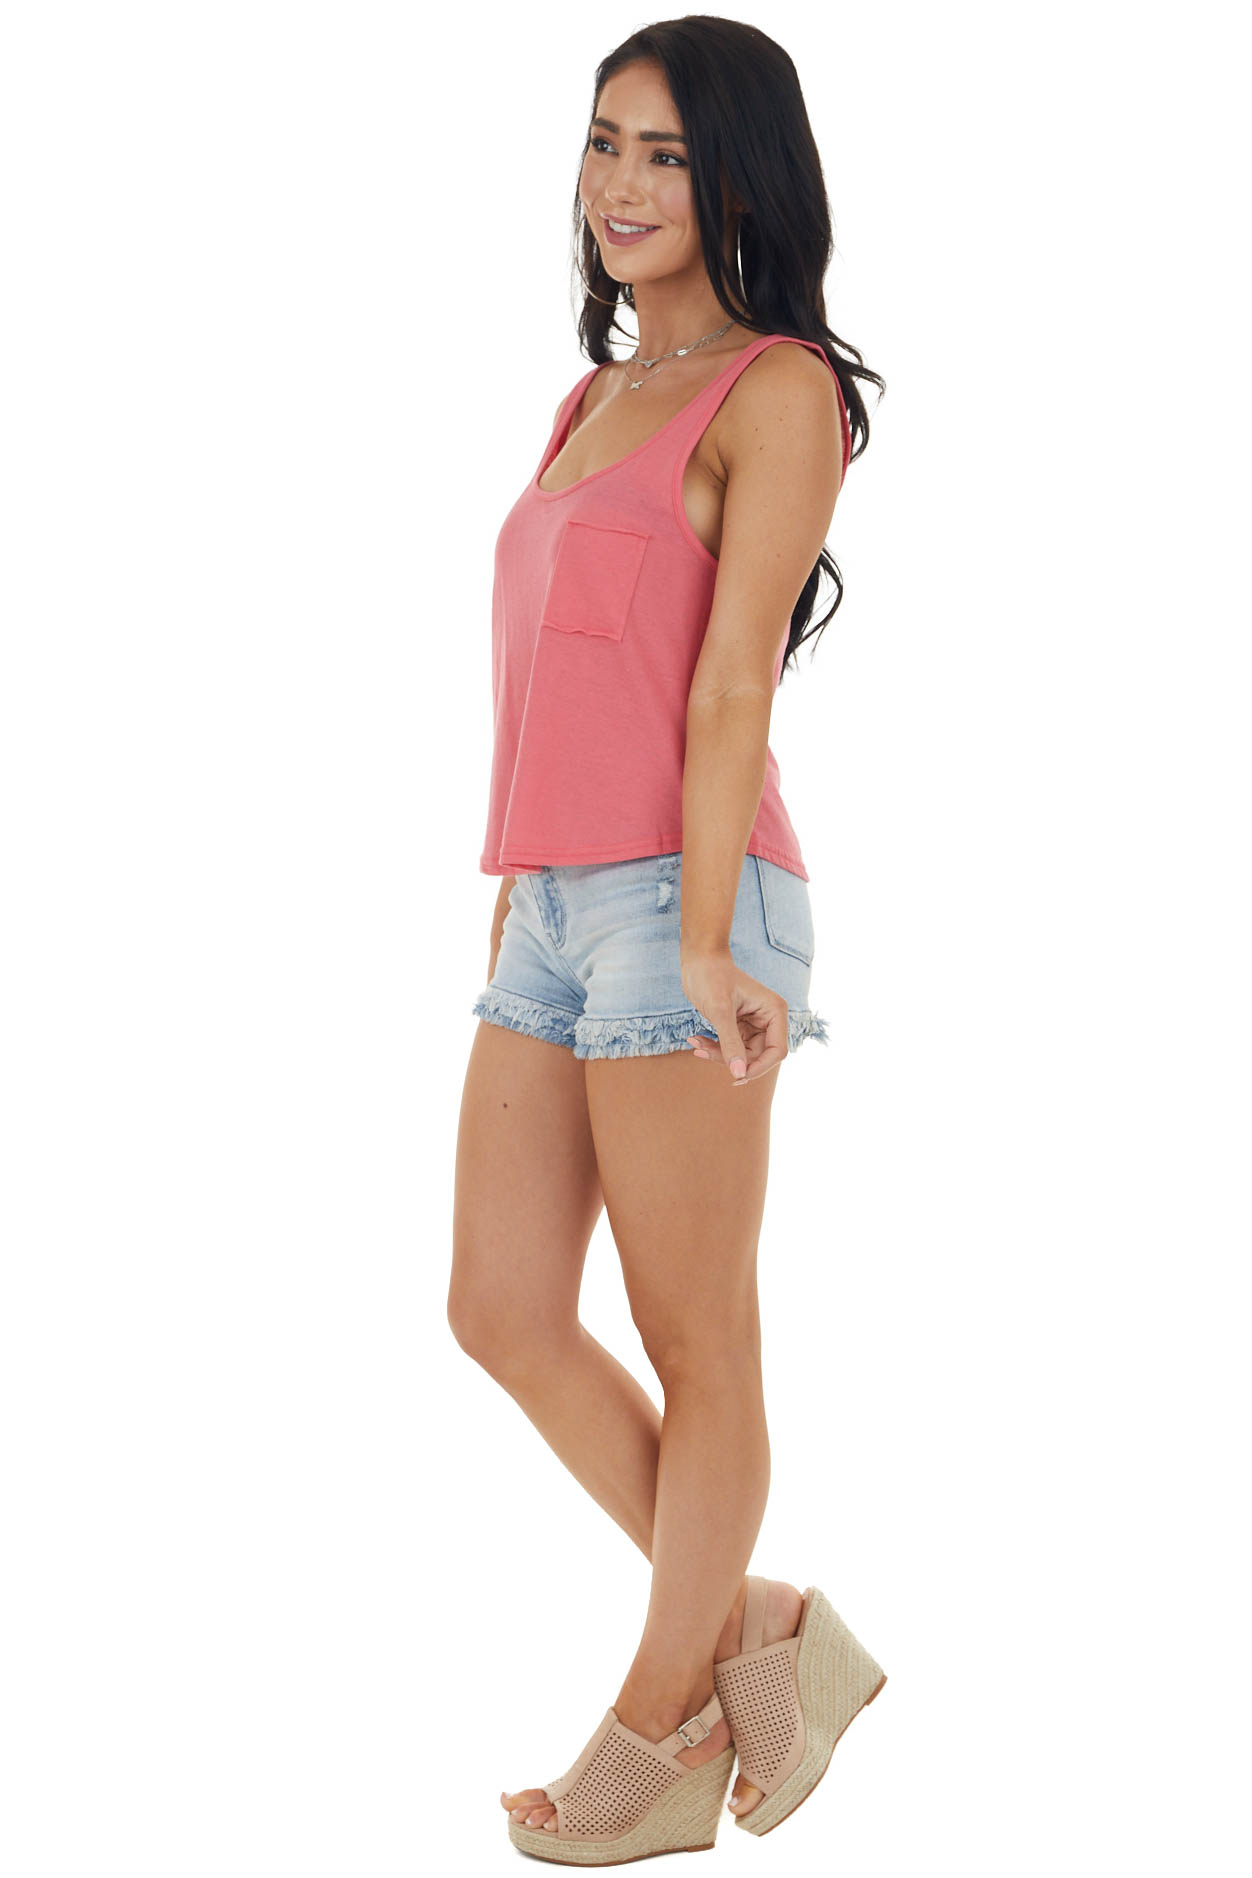 Heathered Watermelon Lightweight Knit Tank Top with Pocket